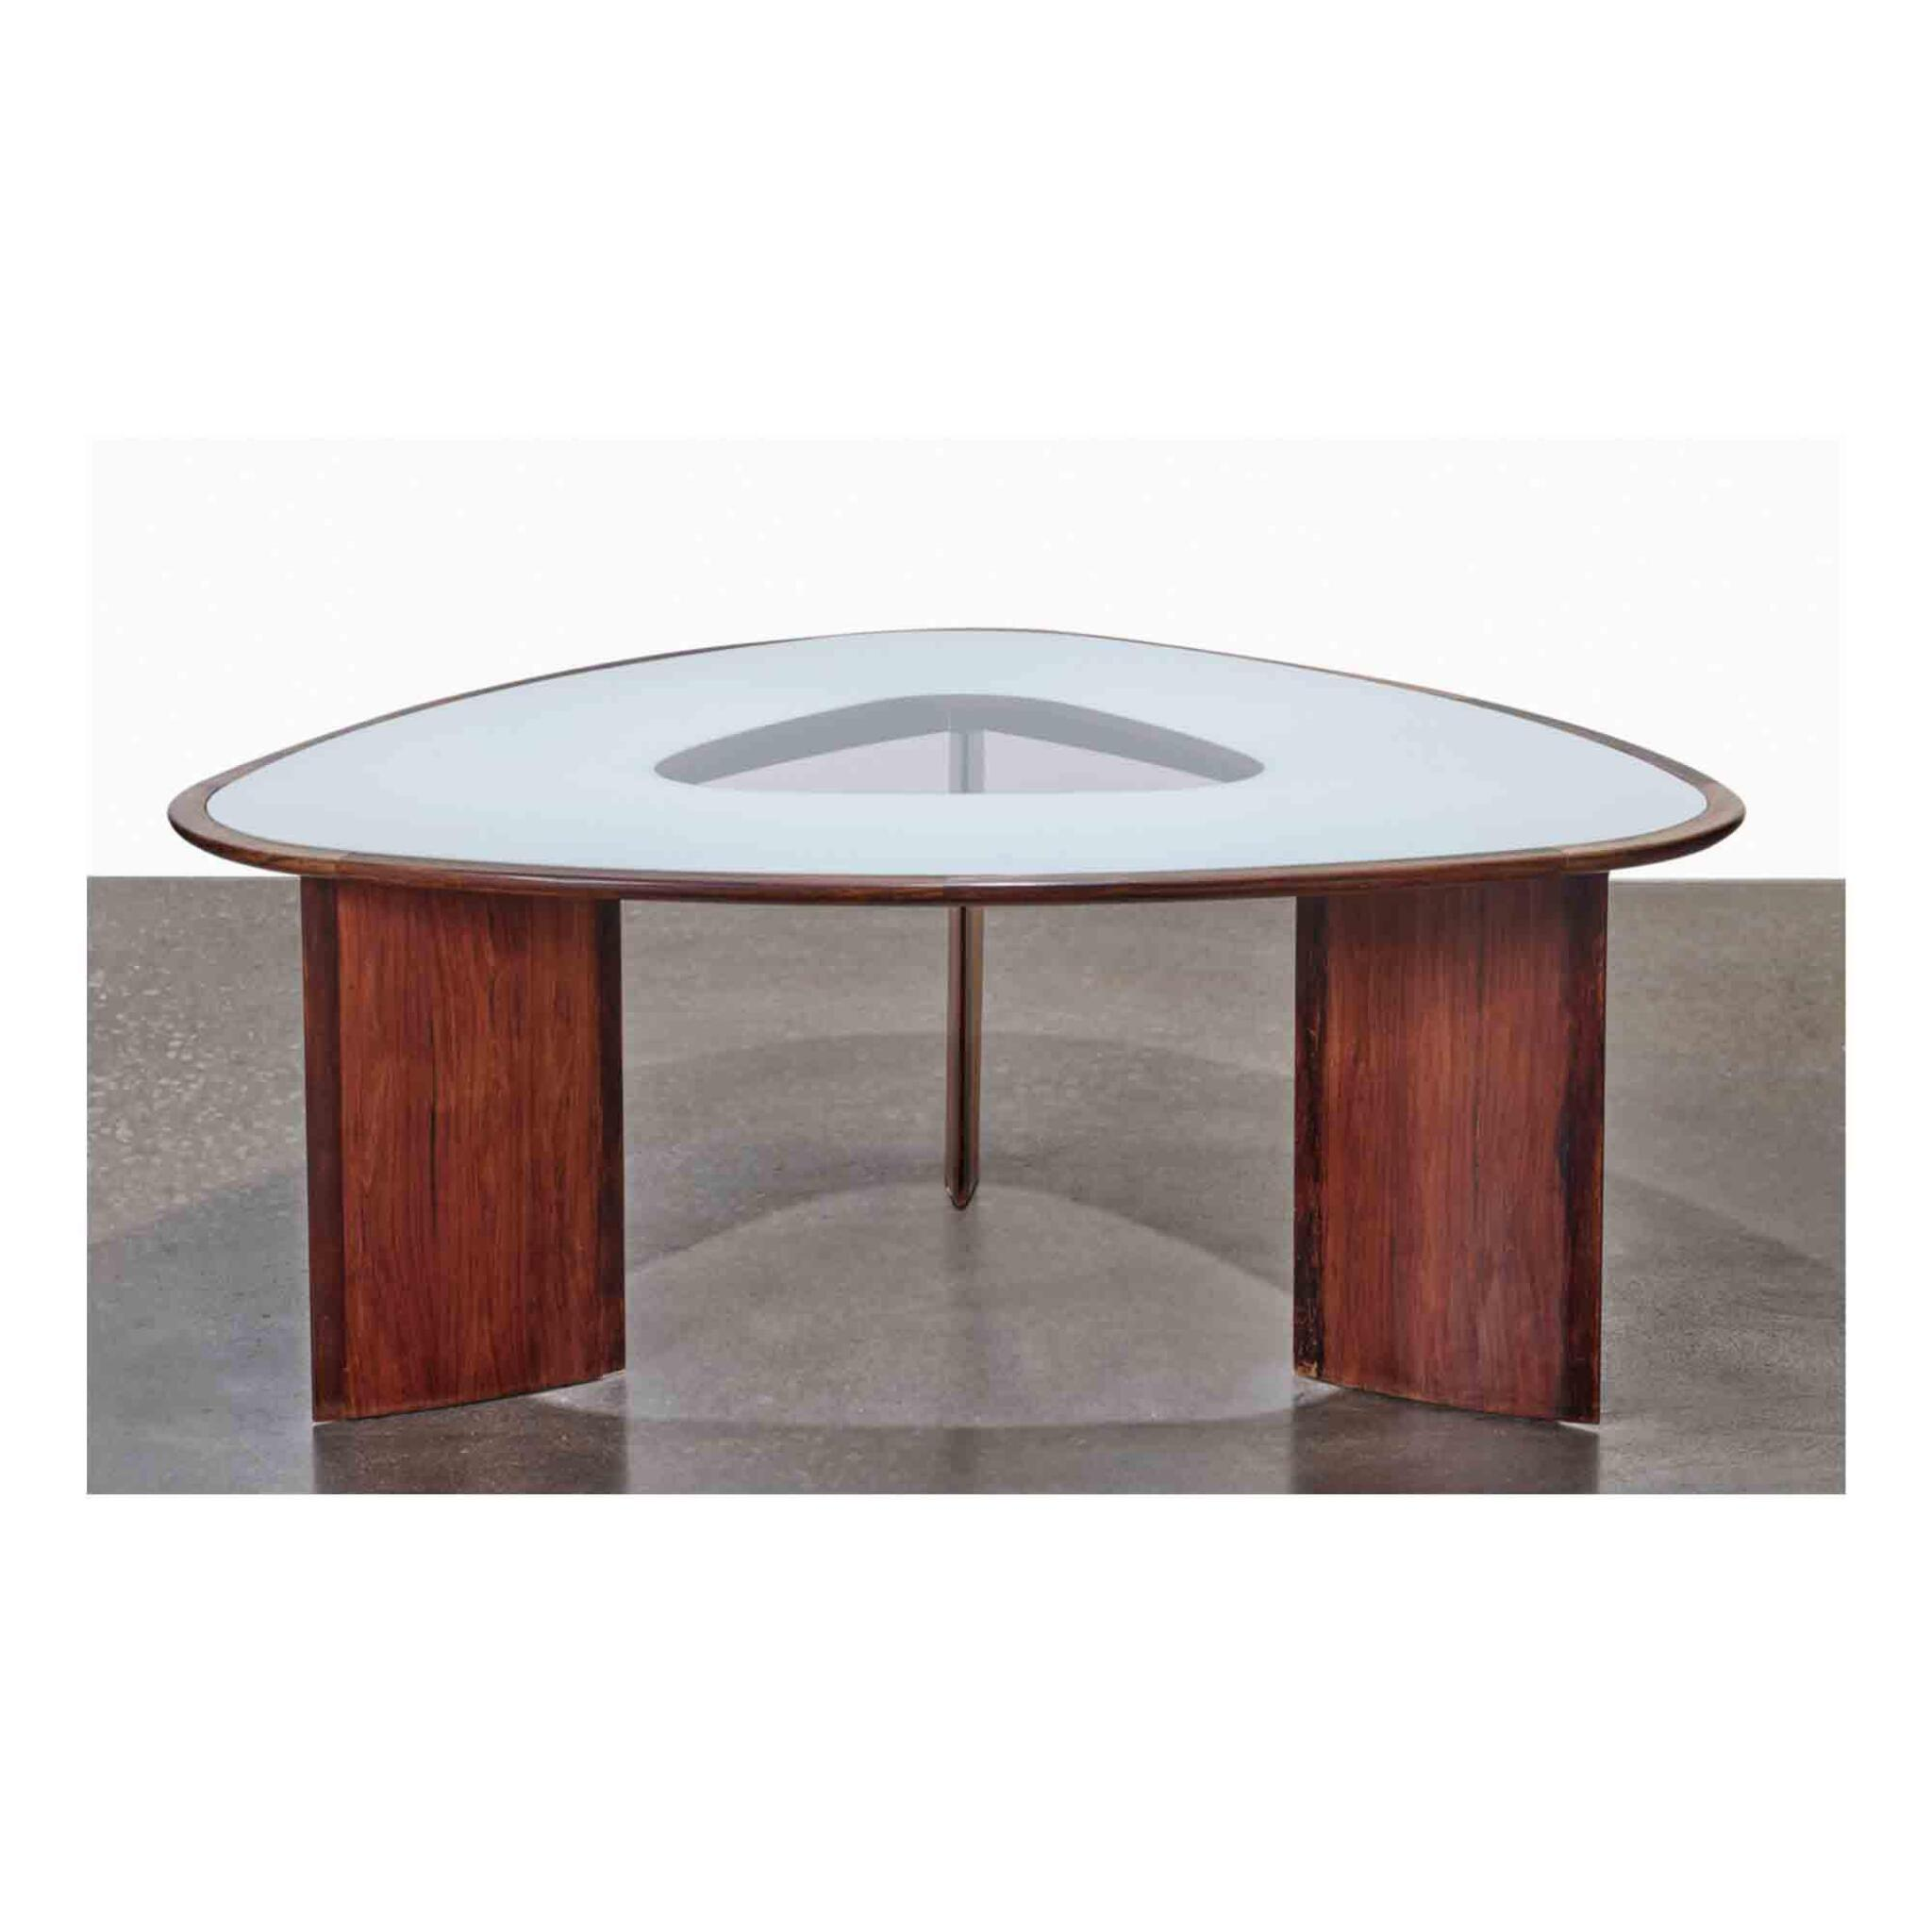 """View full screen - View 1 of Lot 110. A Rare """"Mesa Triangular"""" Table."""